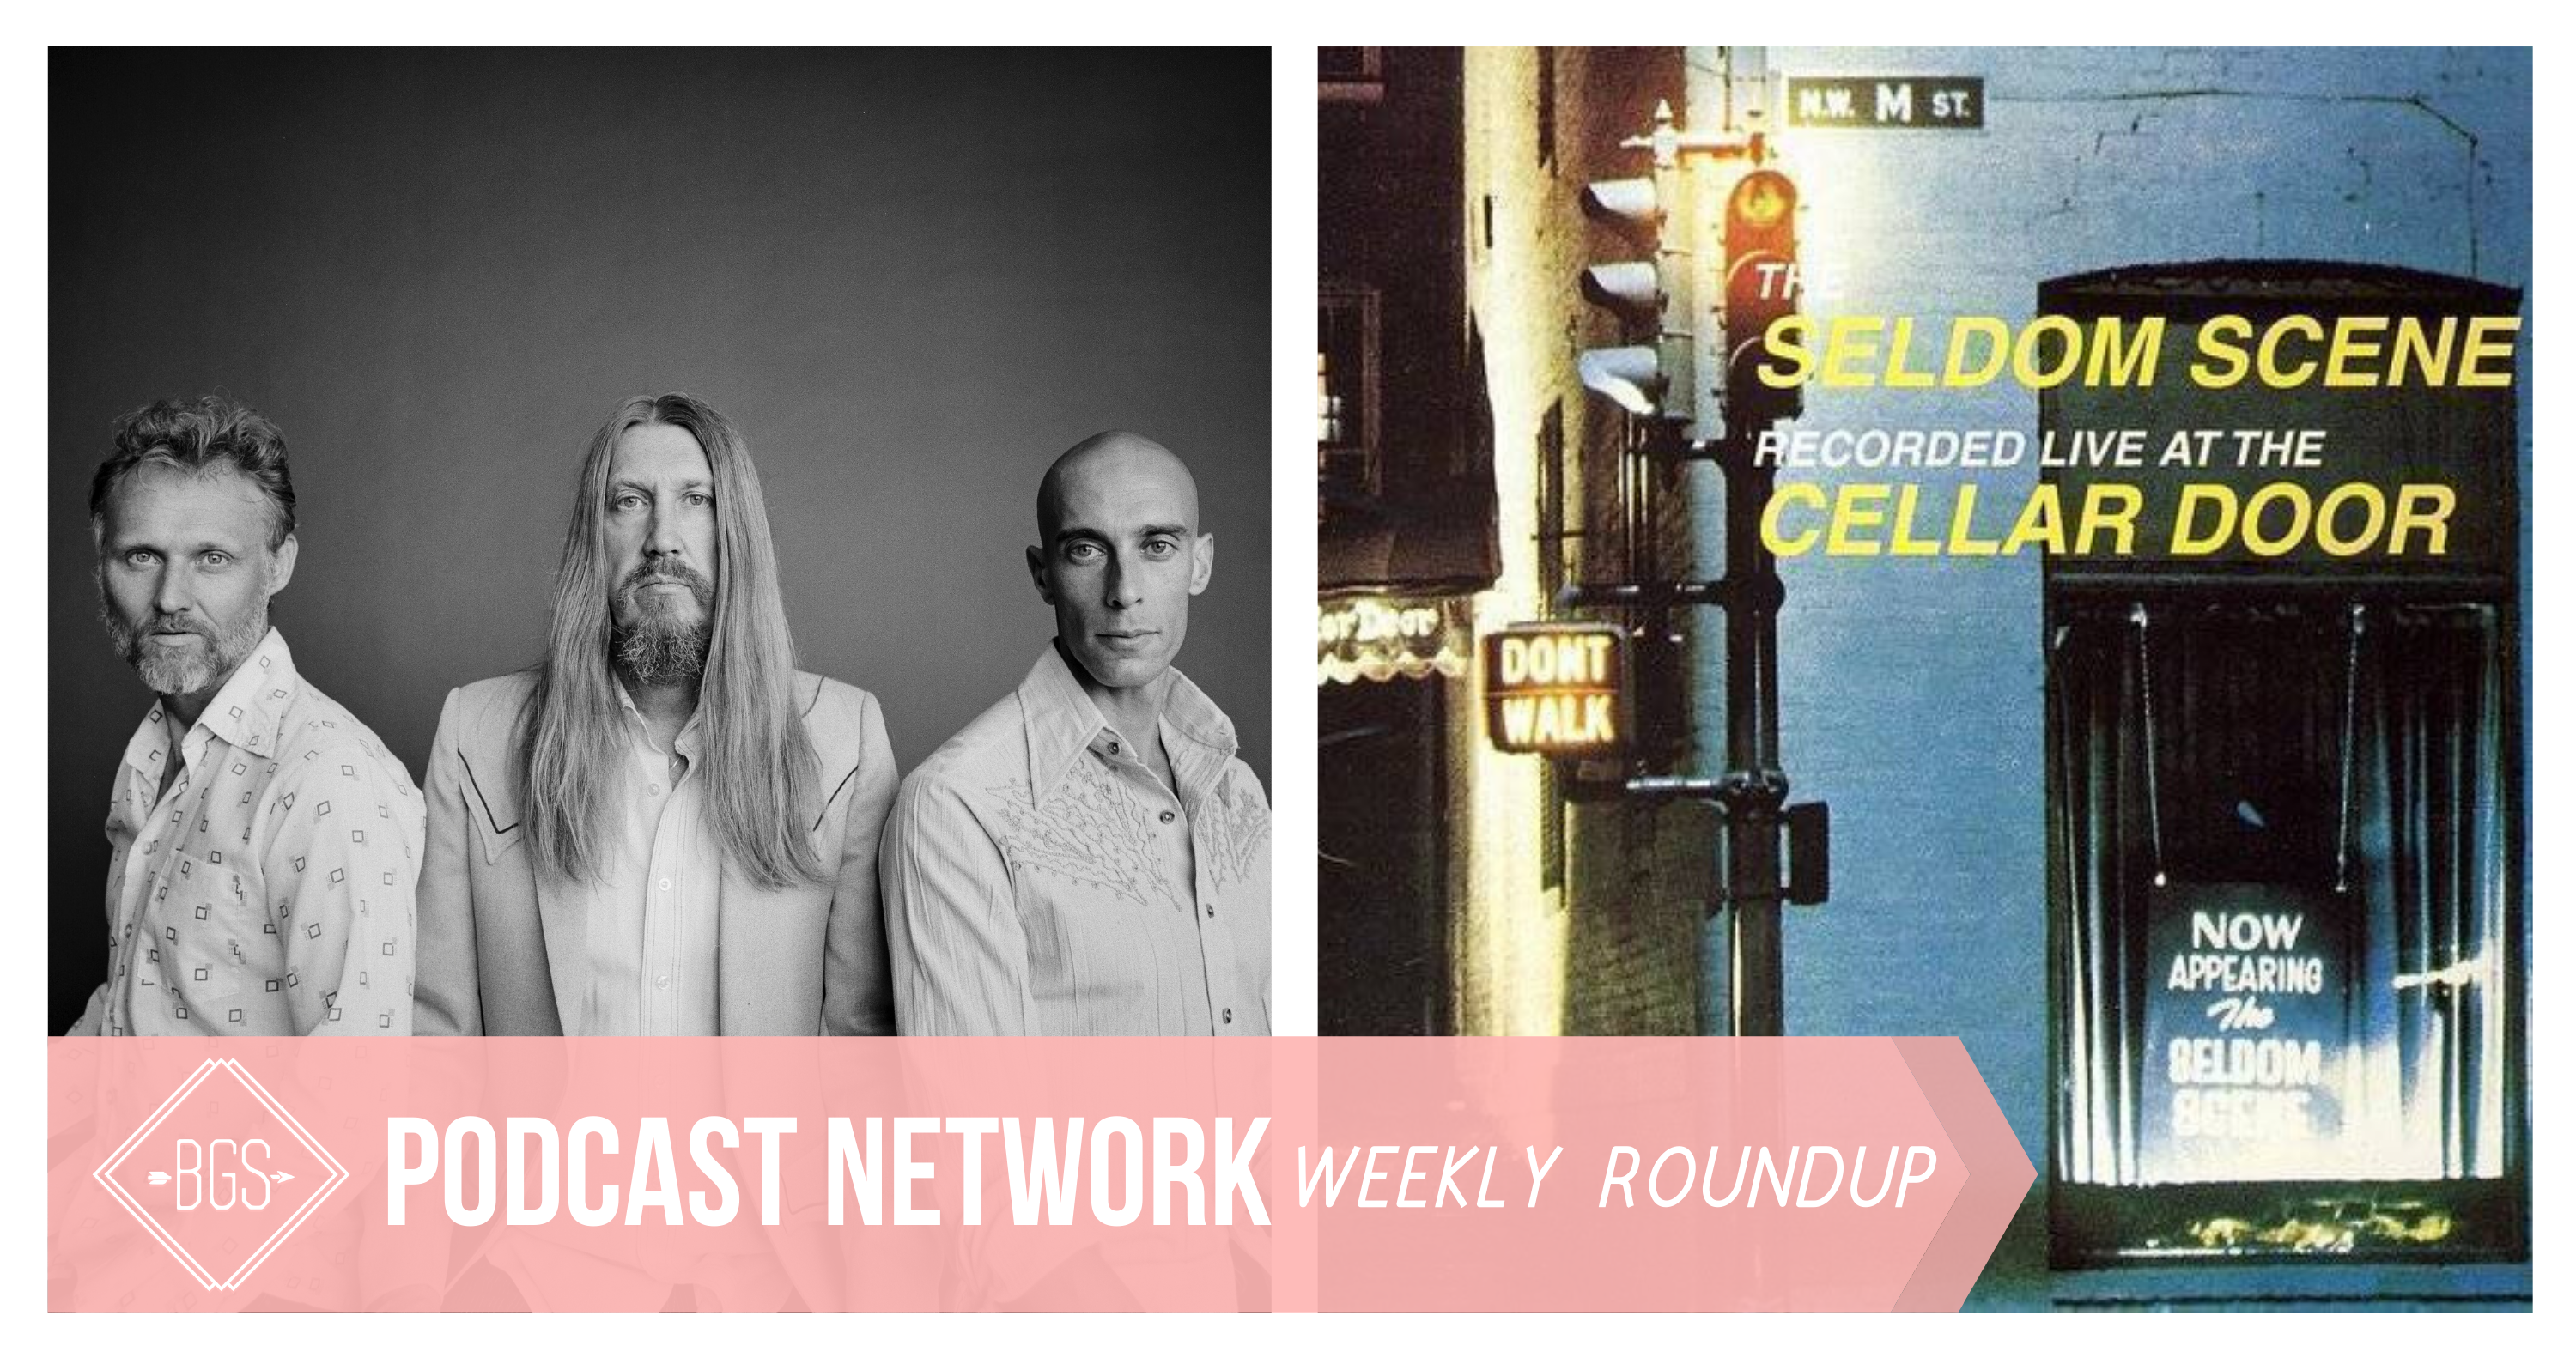 BGS Podcast Network: Weekly Roundup // March 27